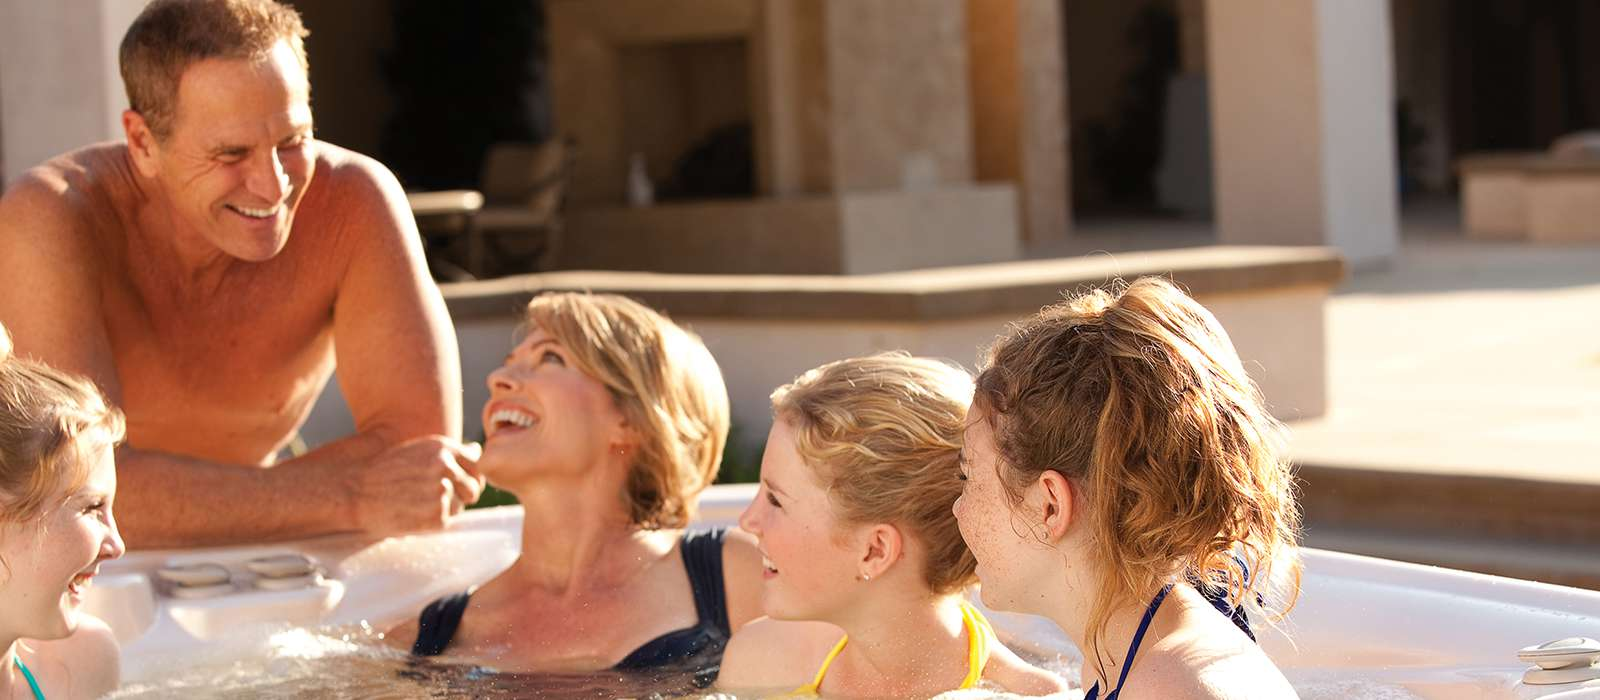 Want to get closer to your kids? Share a hot tub!